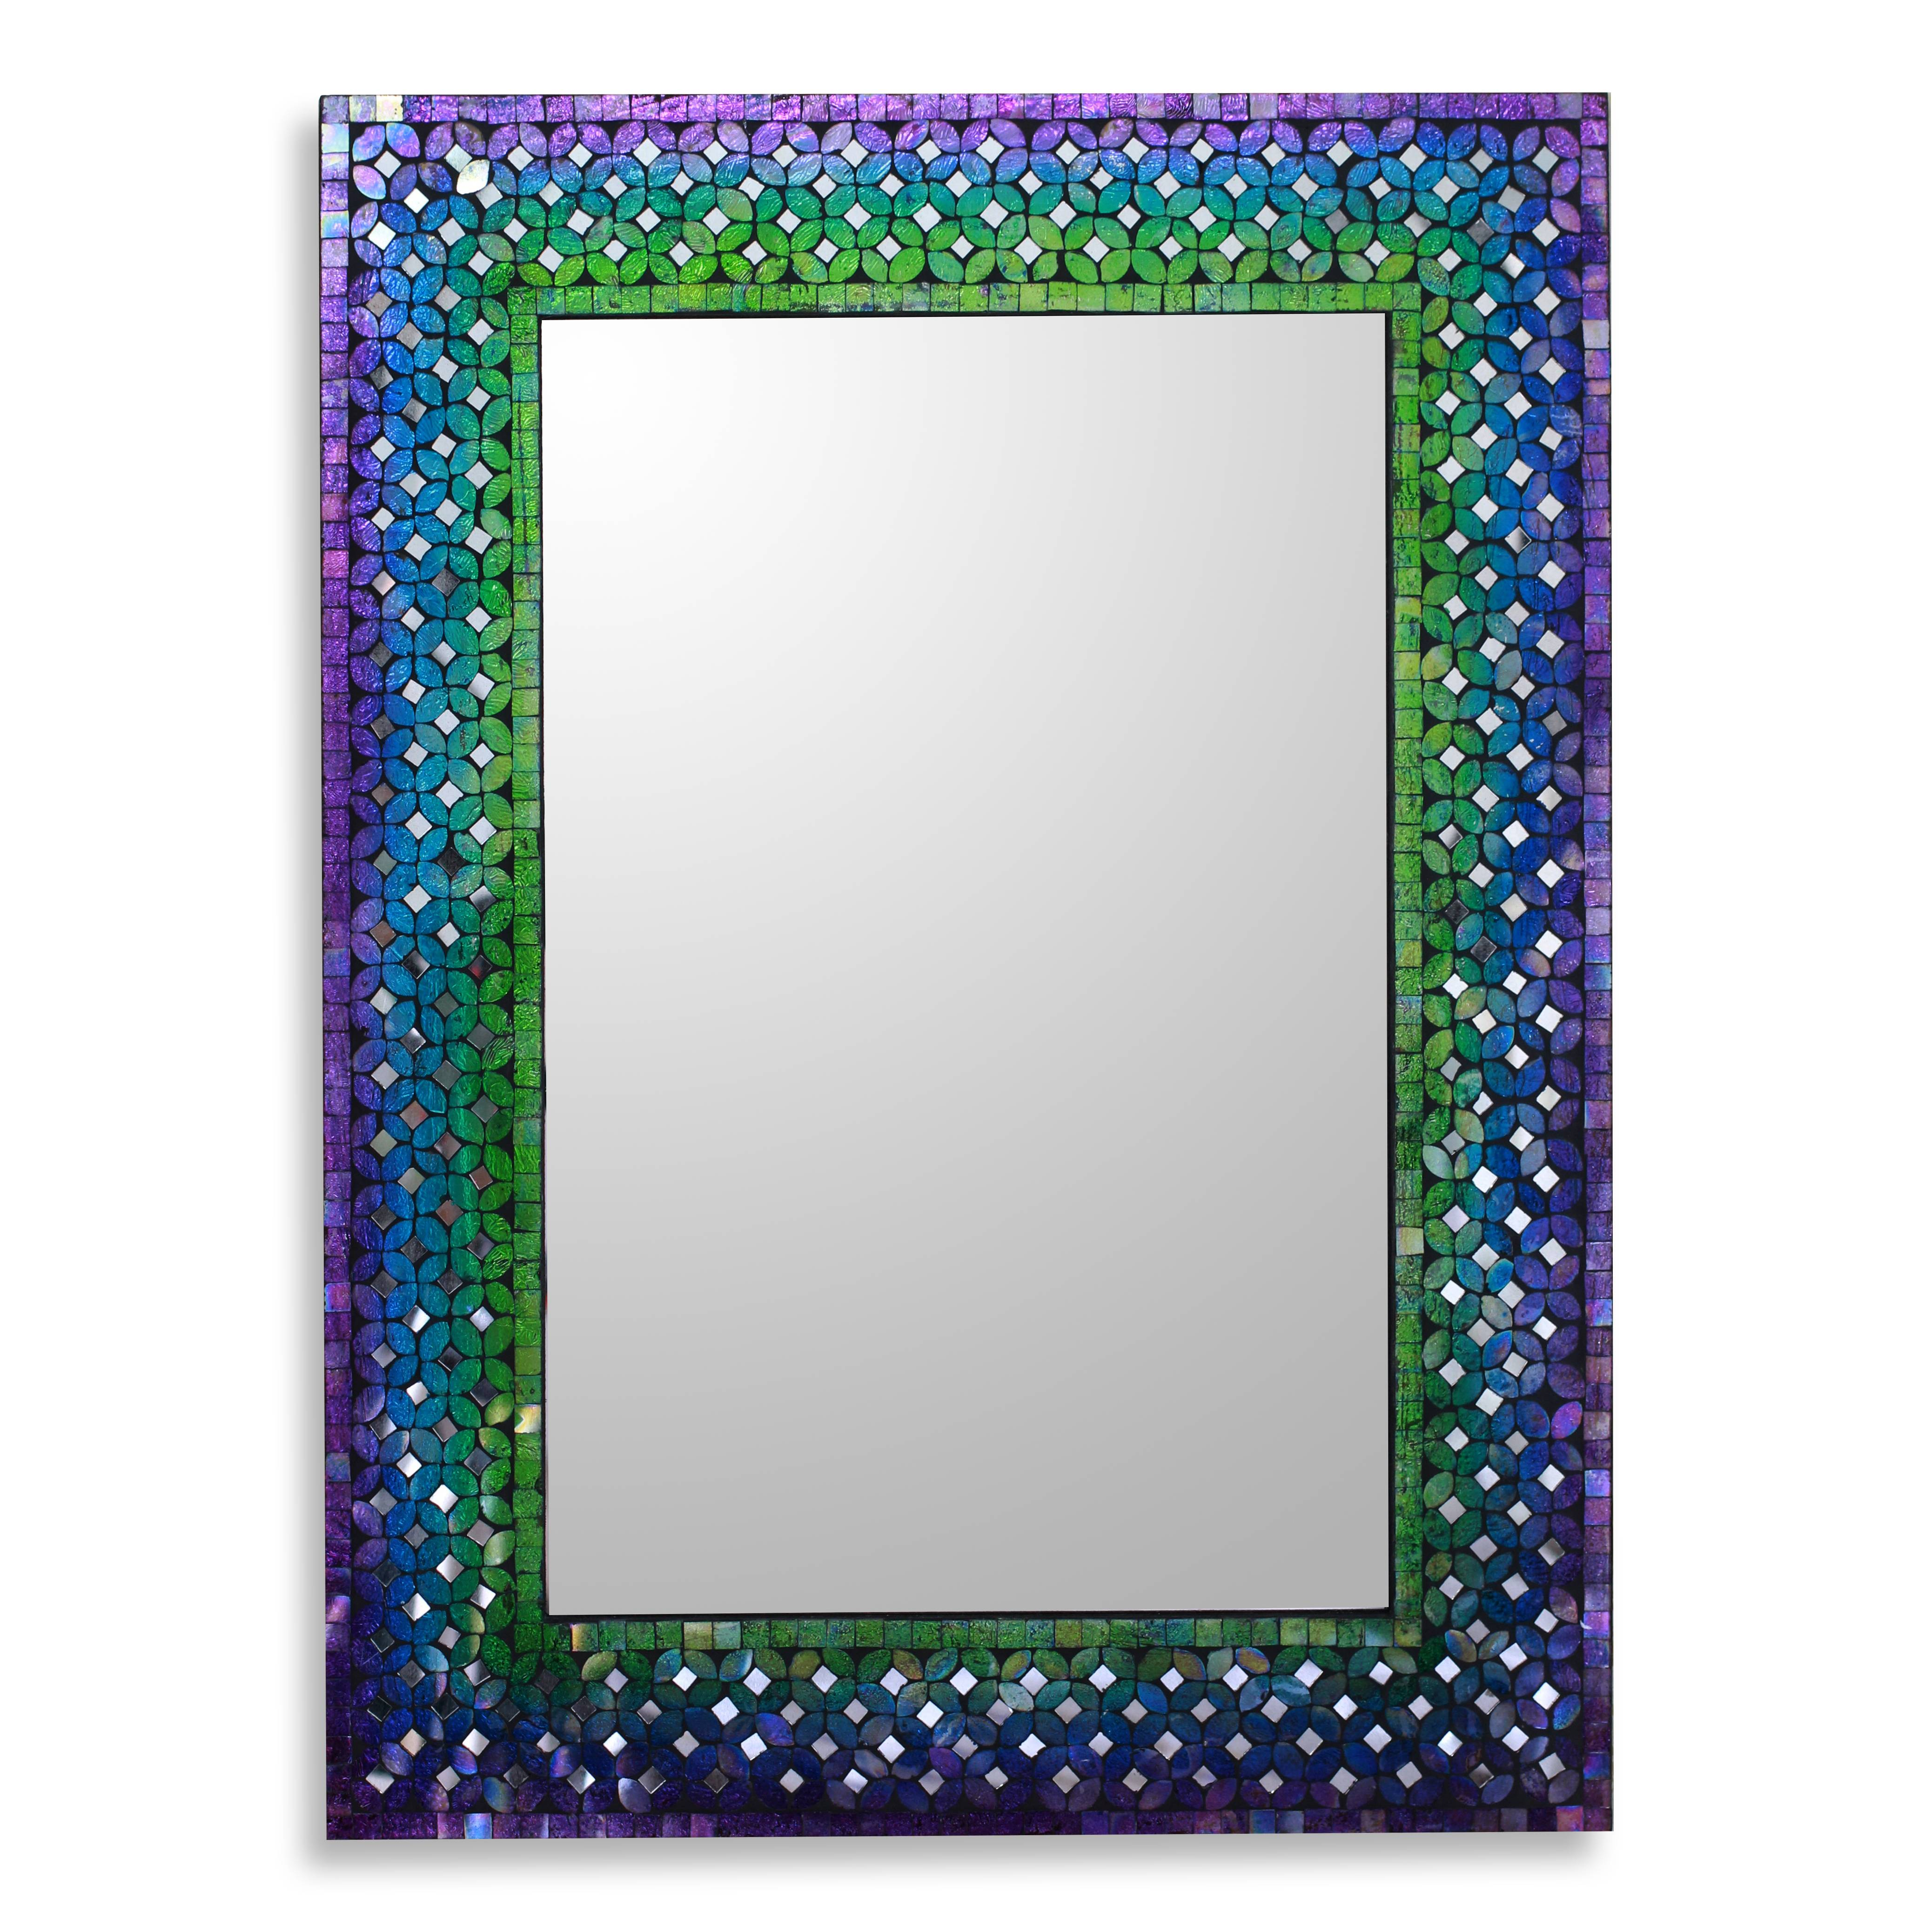 Turquoise Wall Mirror unique artisan crafted glass mosaic tile wall mirror - holi